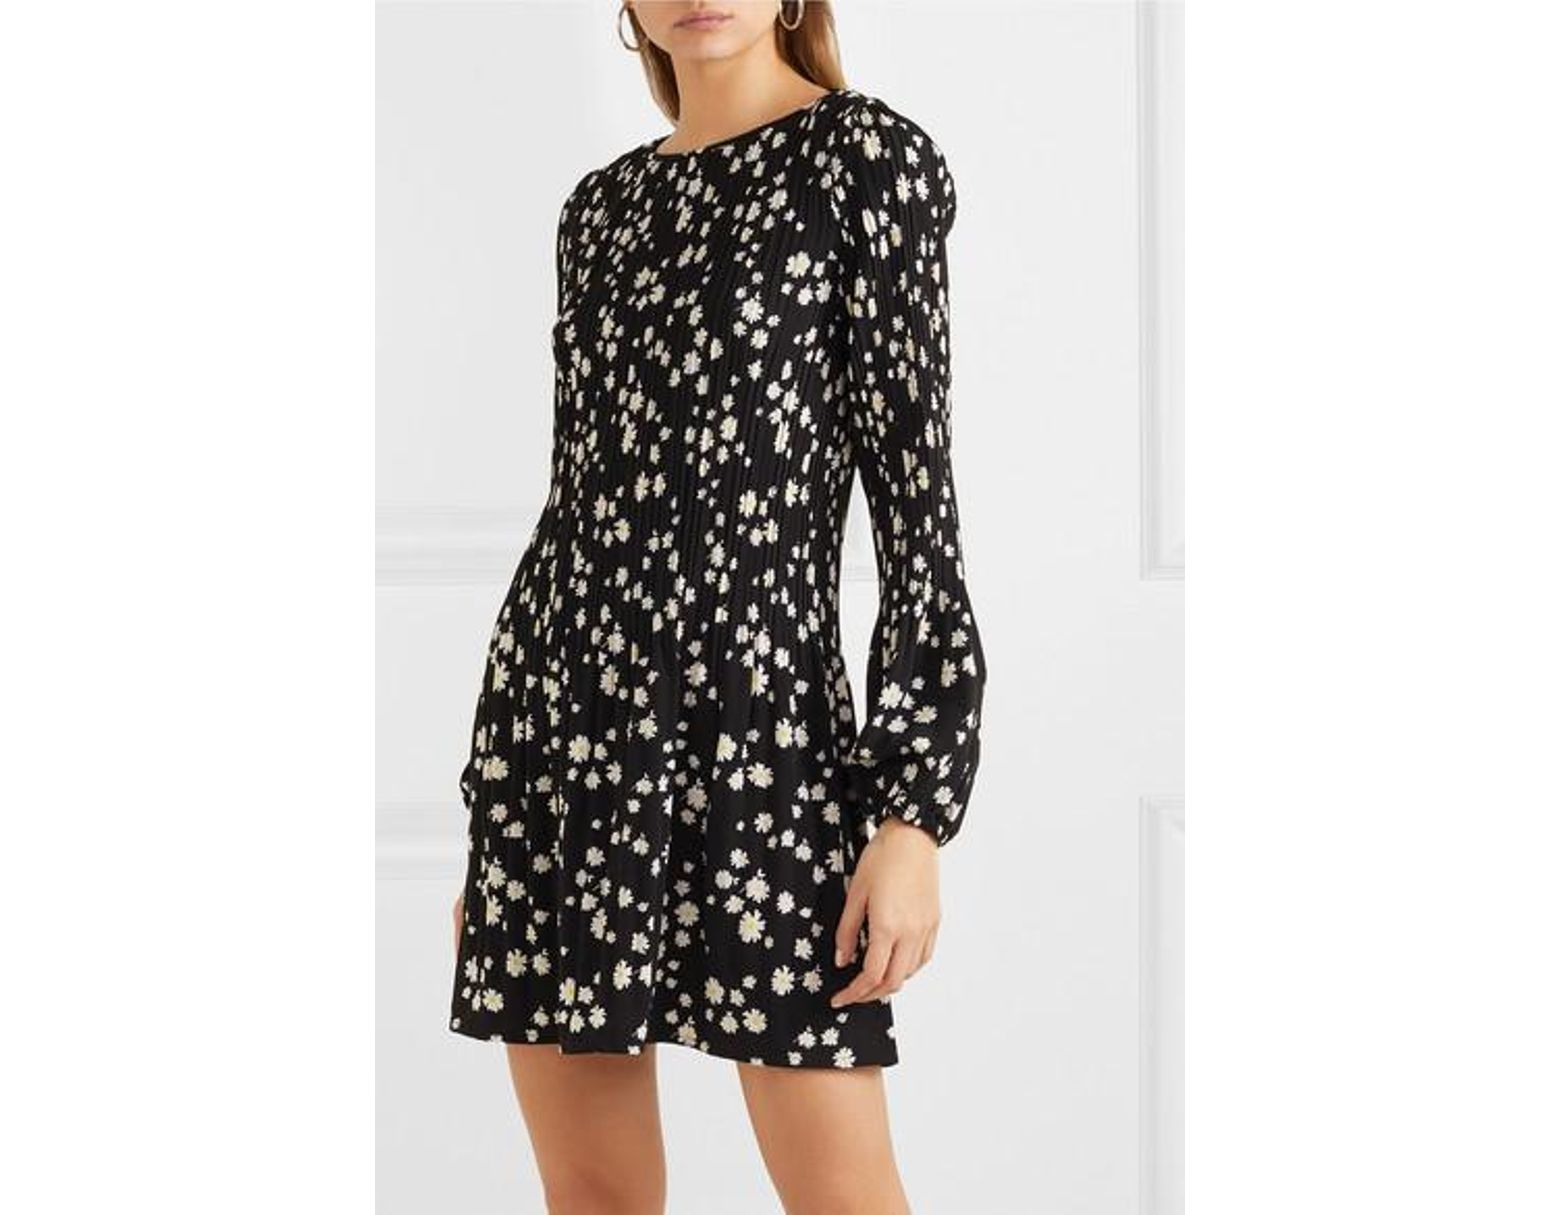 0c269b43c09 Maje Rockiz Daisy Print Long Sleeve Dress in Black - Save 30% - Lyst